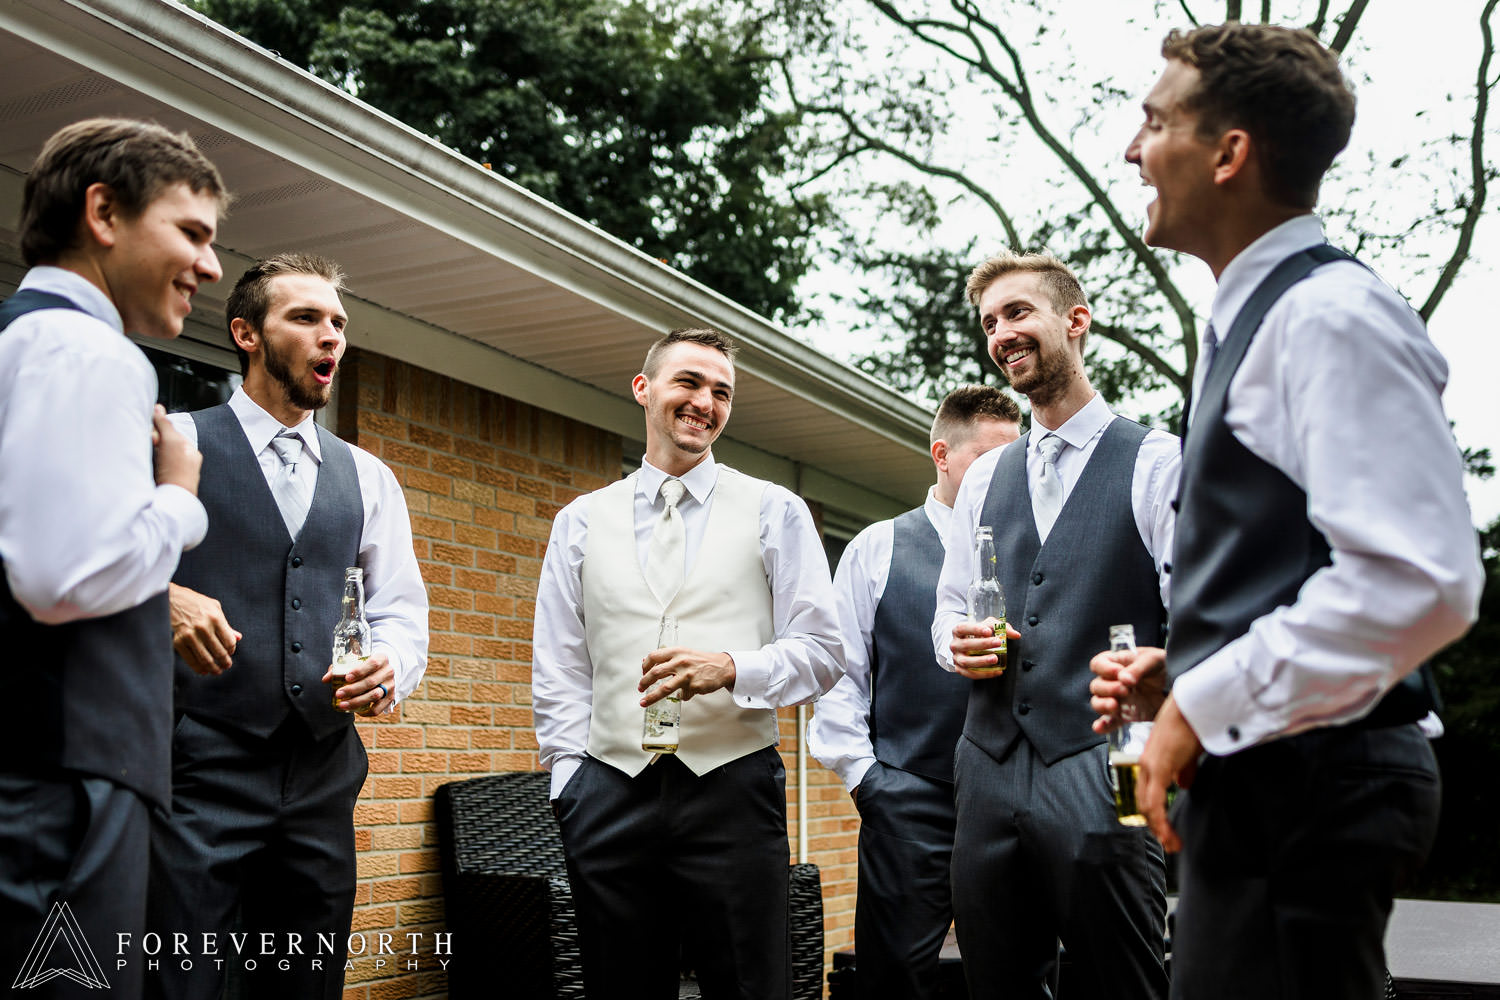 Mendyk-Valenzano-Family-Winery-NJ-Wedding-Photographer-09.JPG